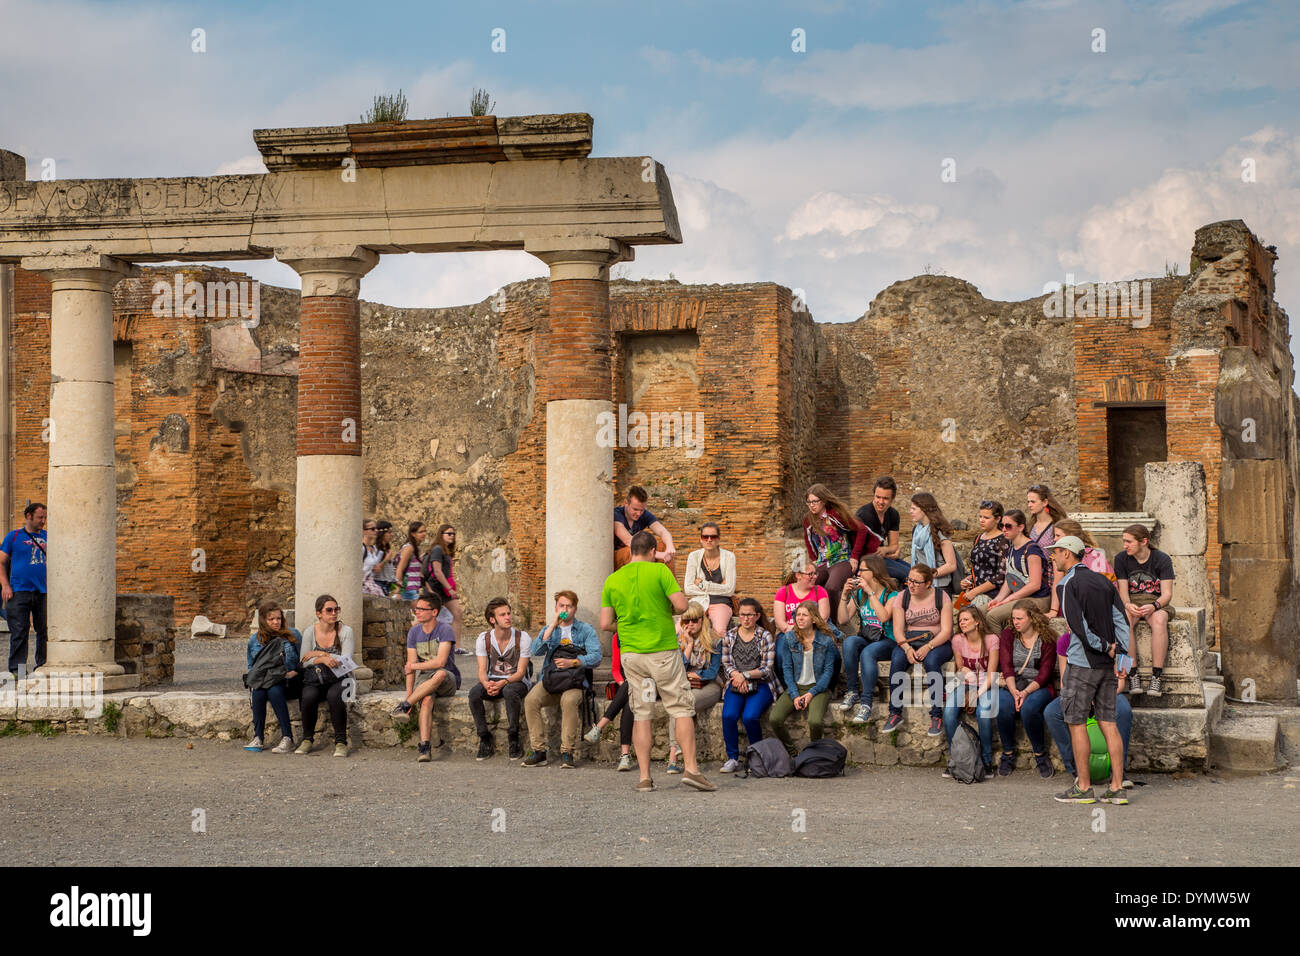 School trip to the ruins of the Roman city of Pompeii, Italy - Stock Image